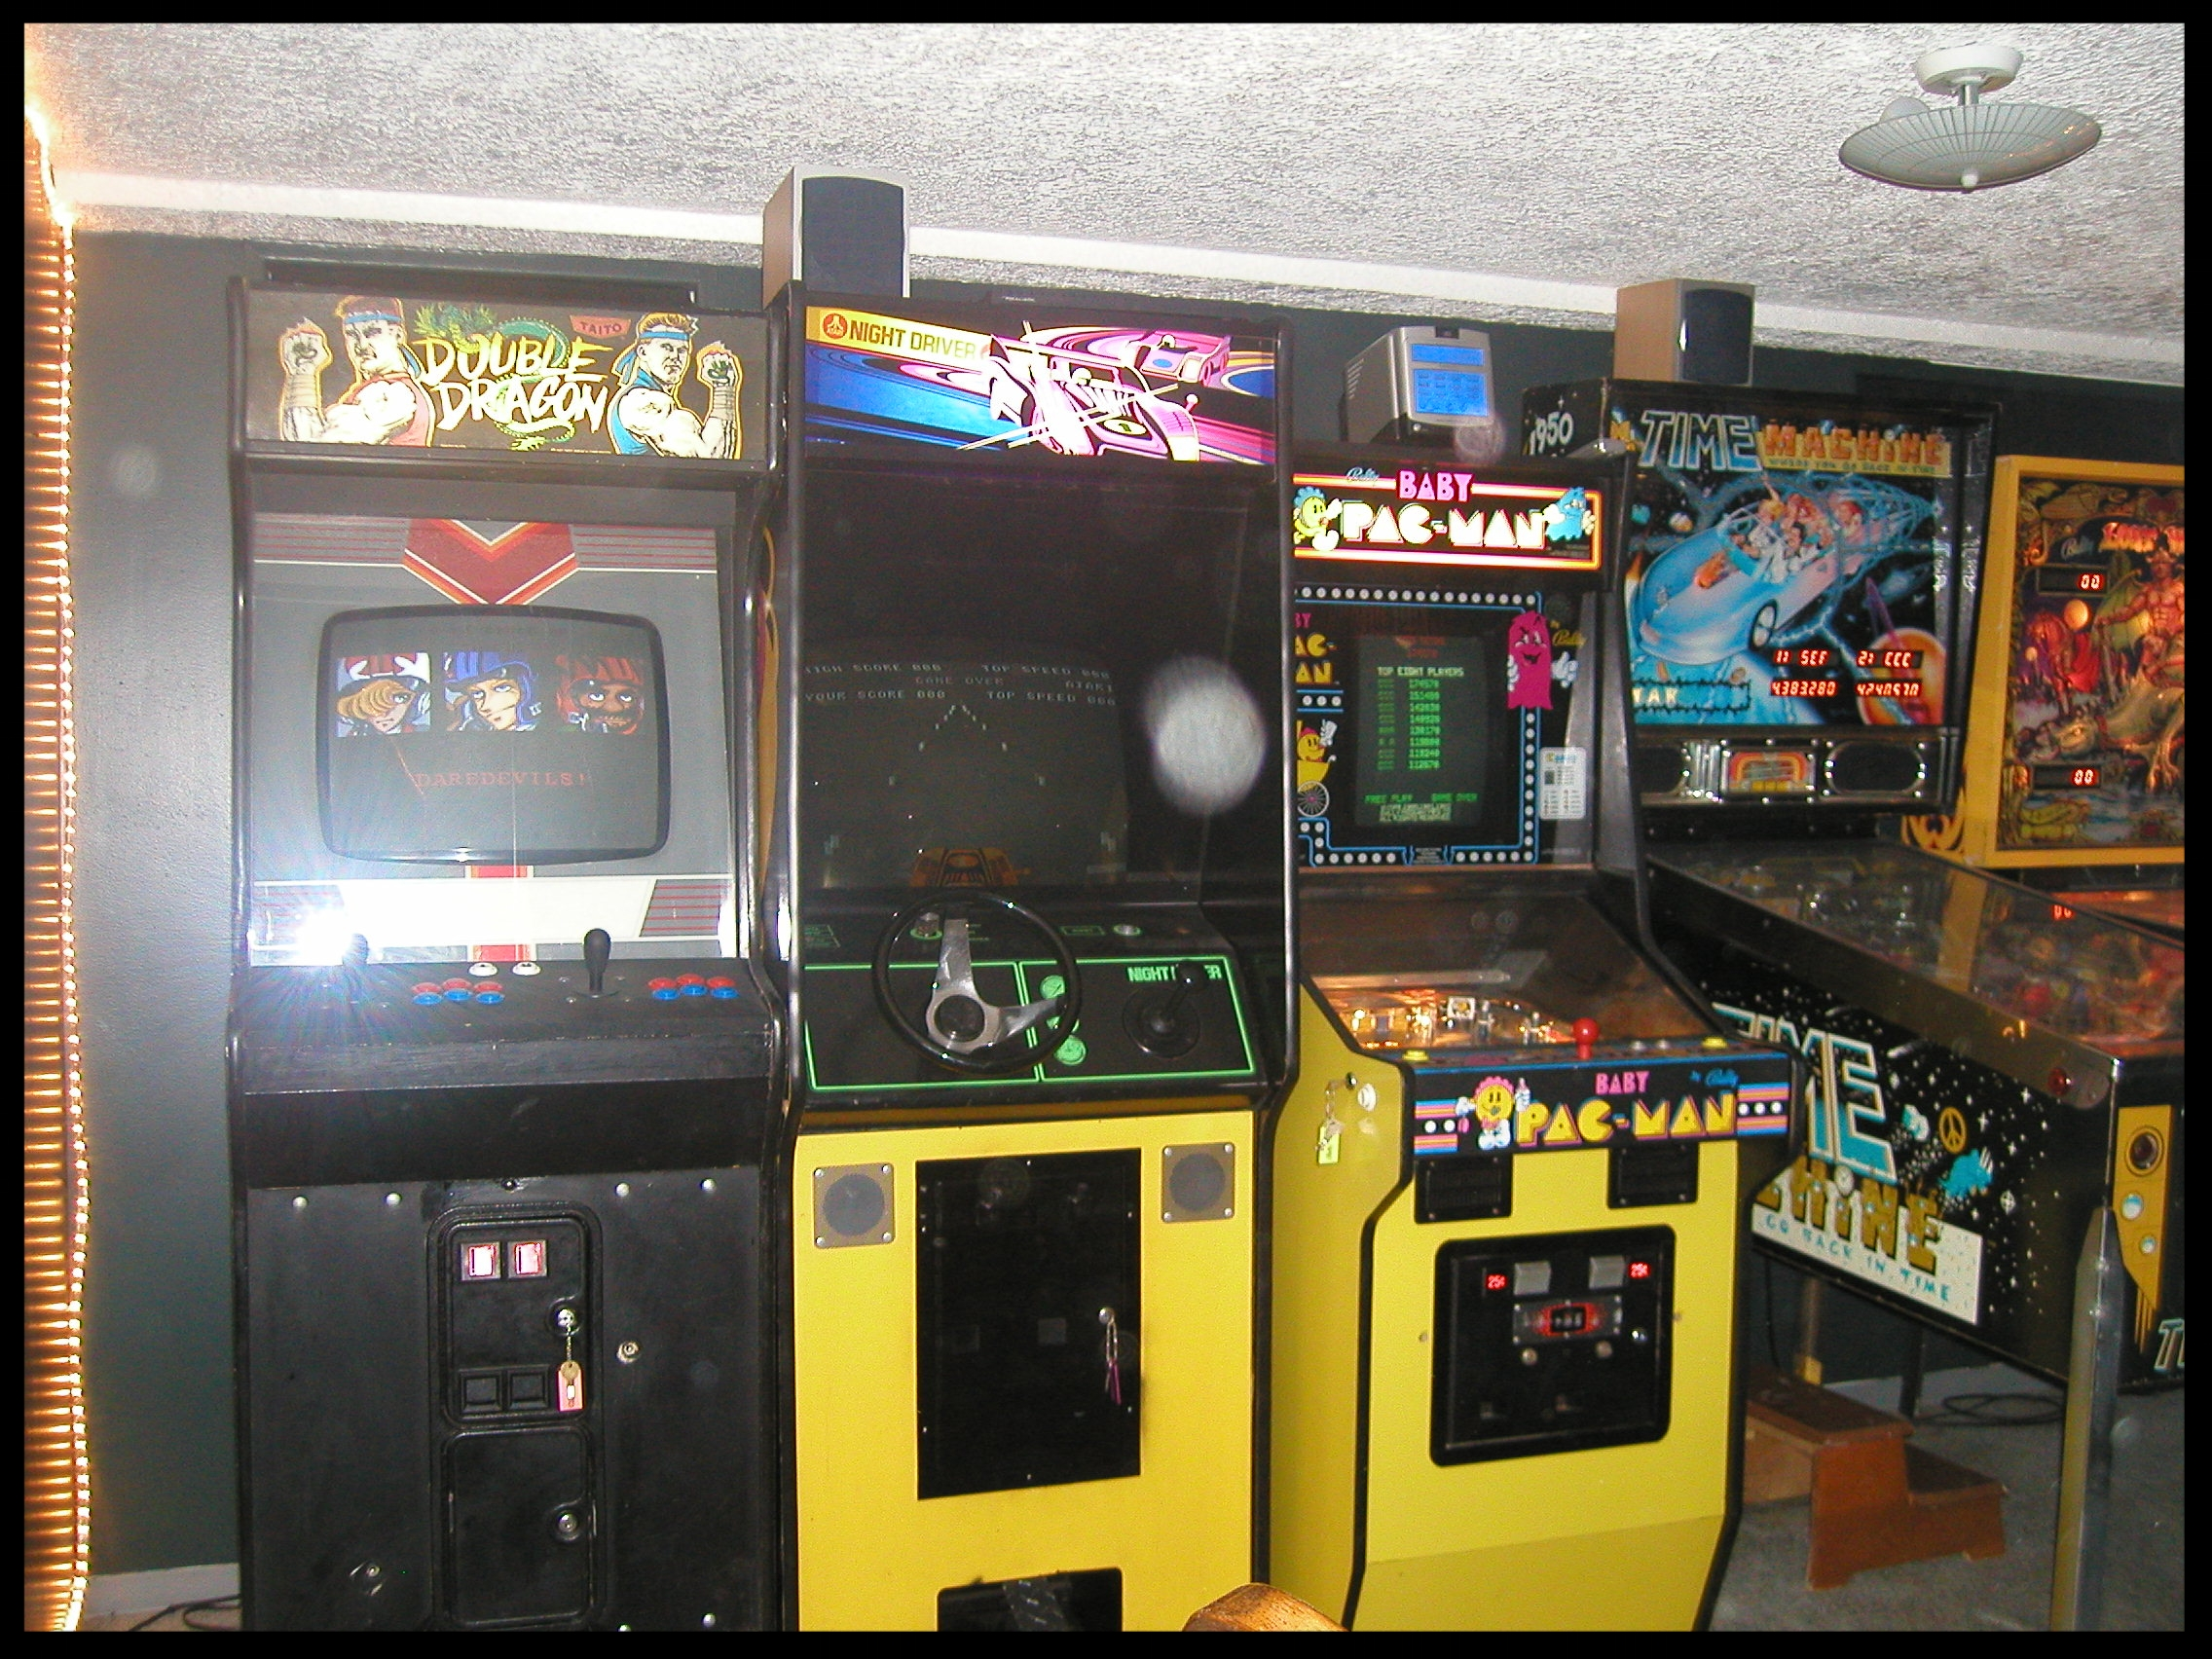 From left to right: Double Dragon, Night Driver, Baby Pac-Man, Time Machine